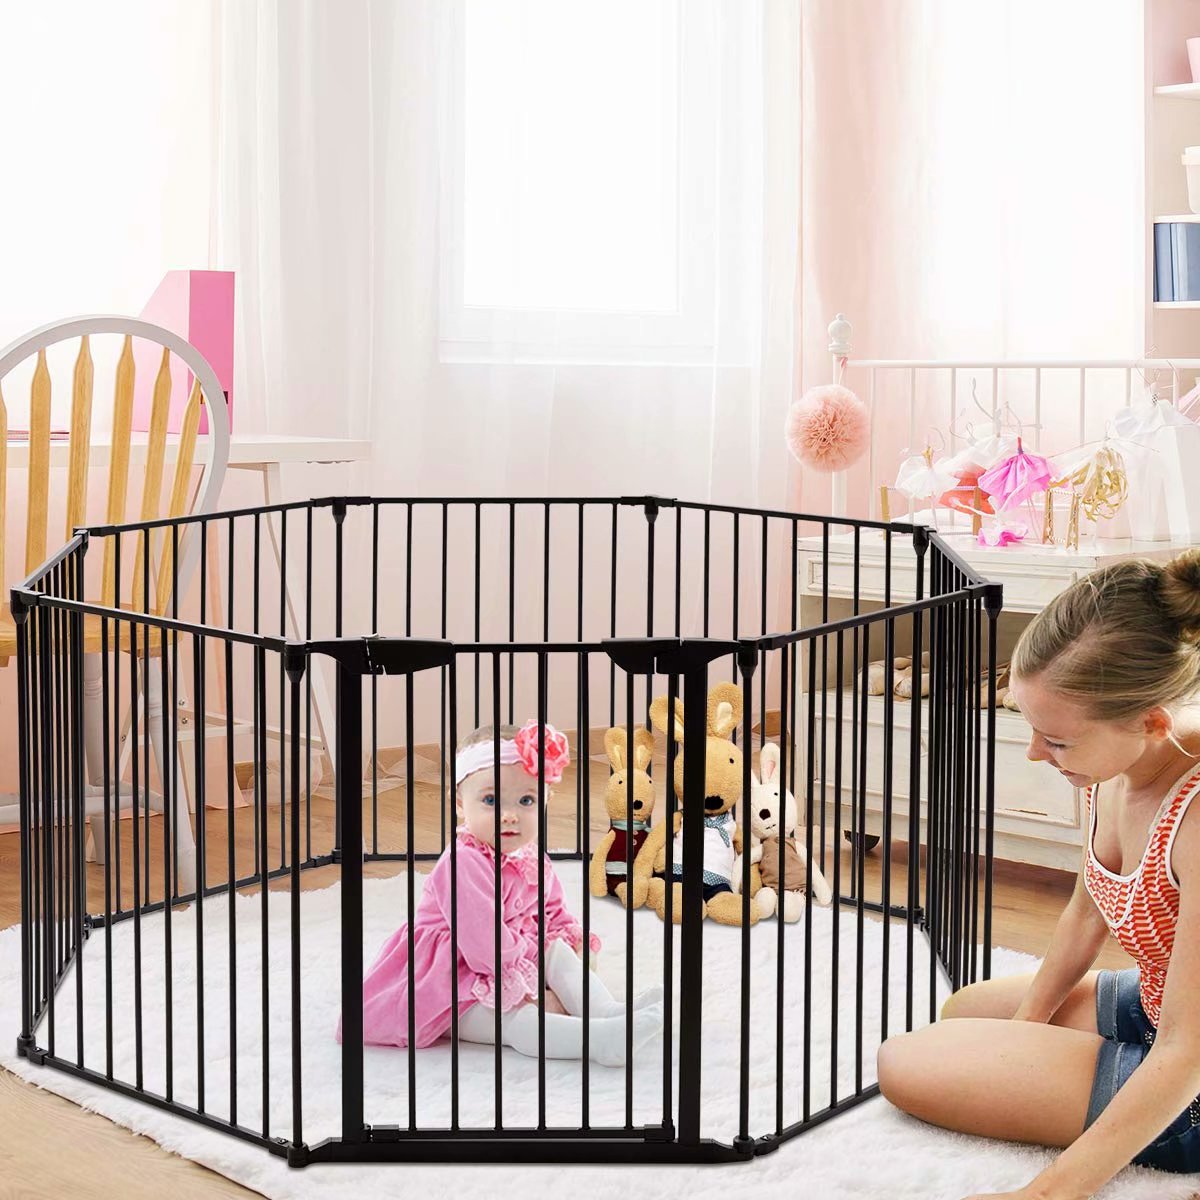 Baby Safety Gate, Fireplace Fence, Wide Barrier with Walk-Through Door in Two Directions, Add Decrease Panels... by SUNZEO